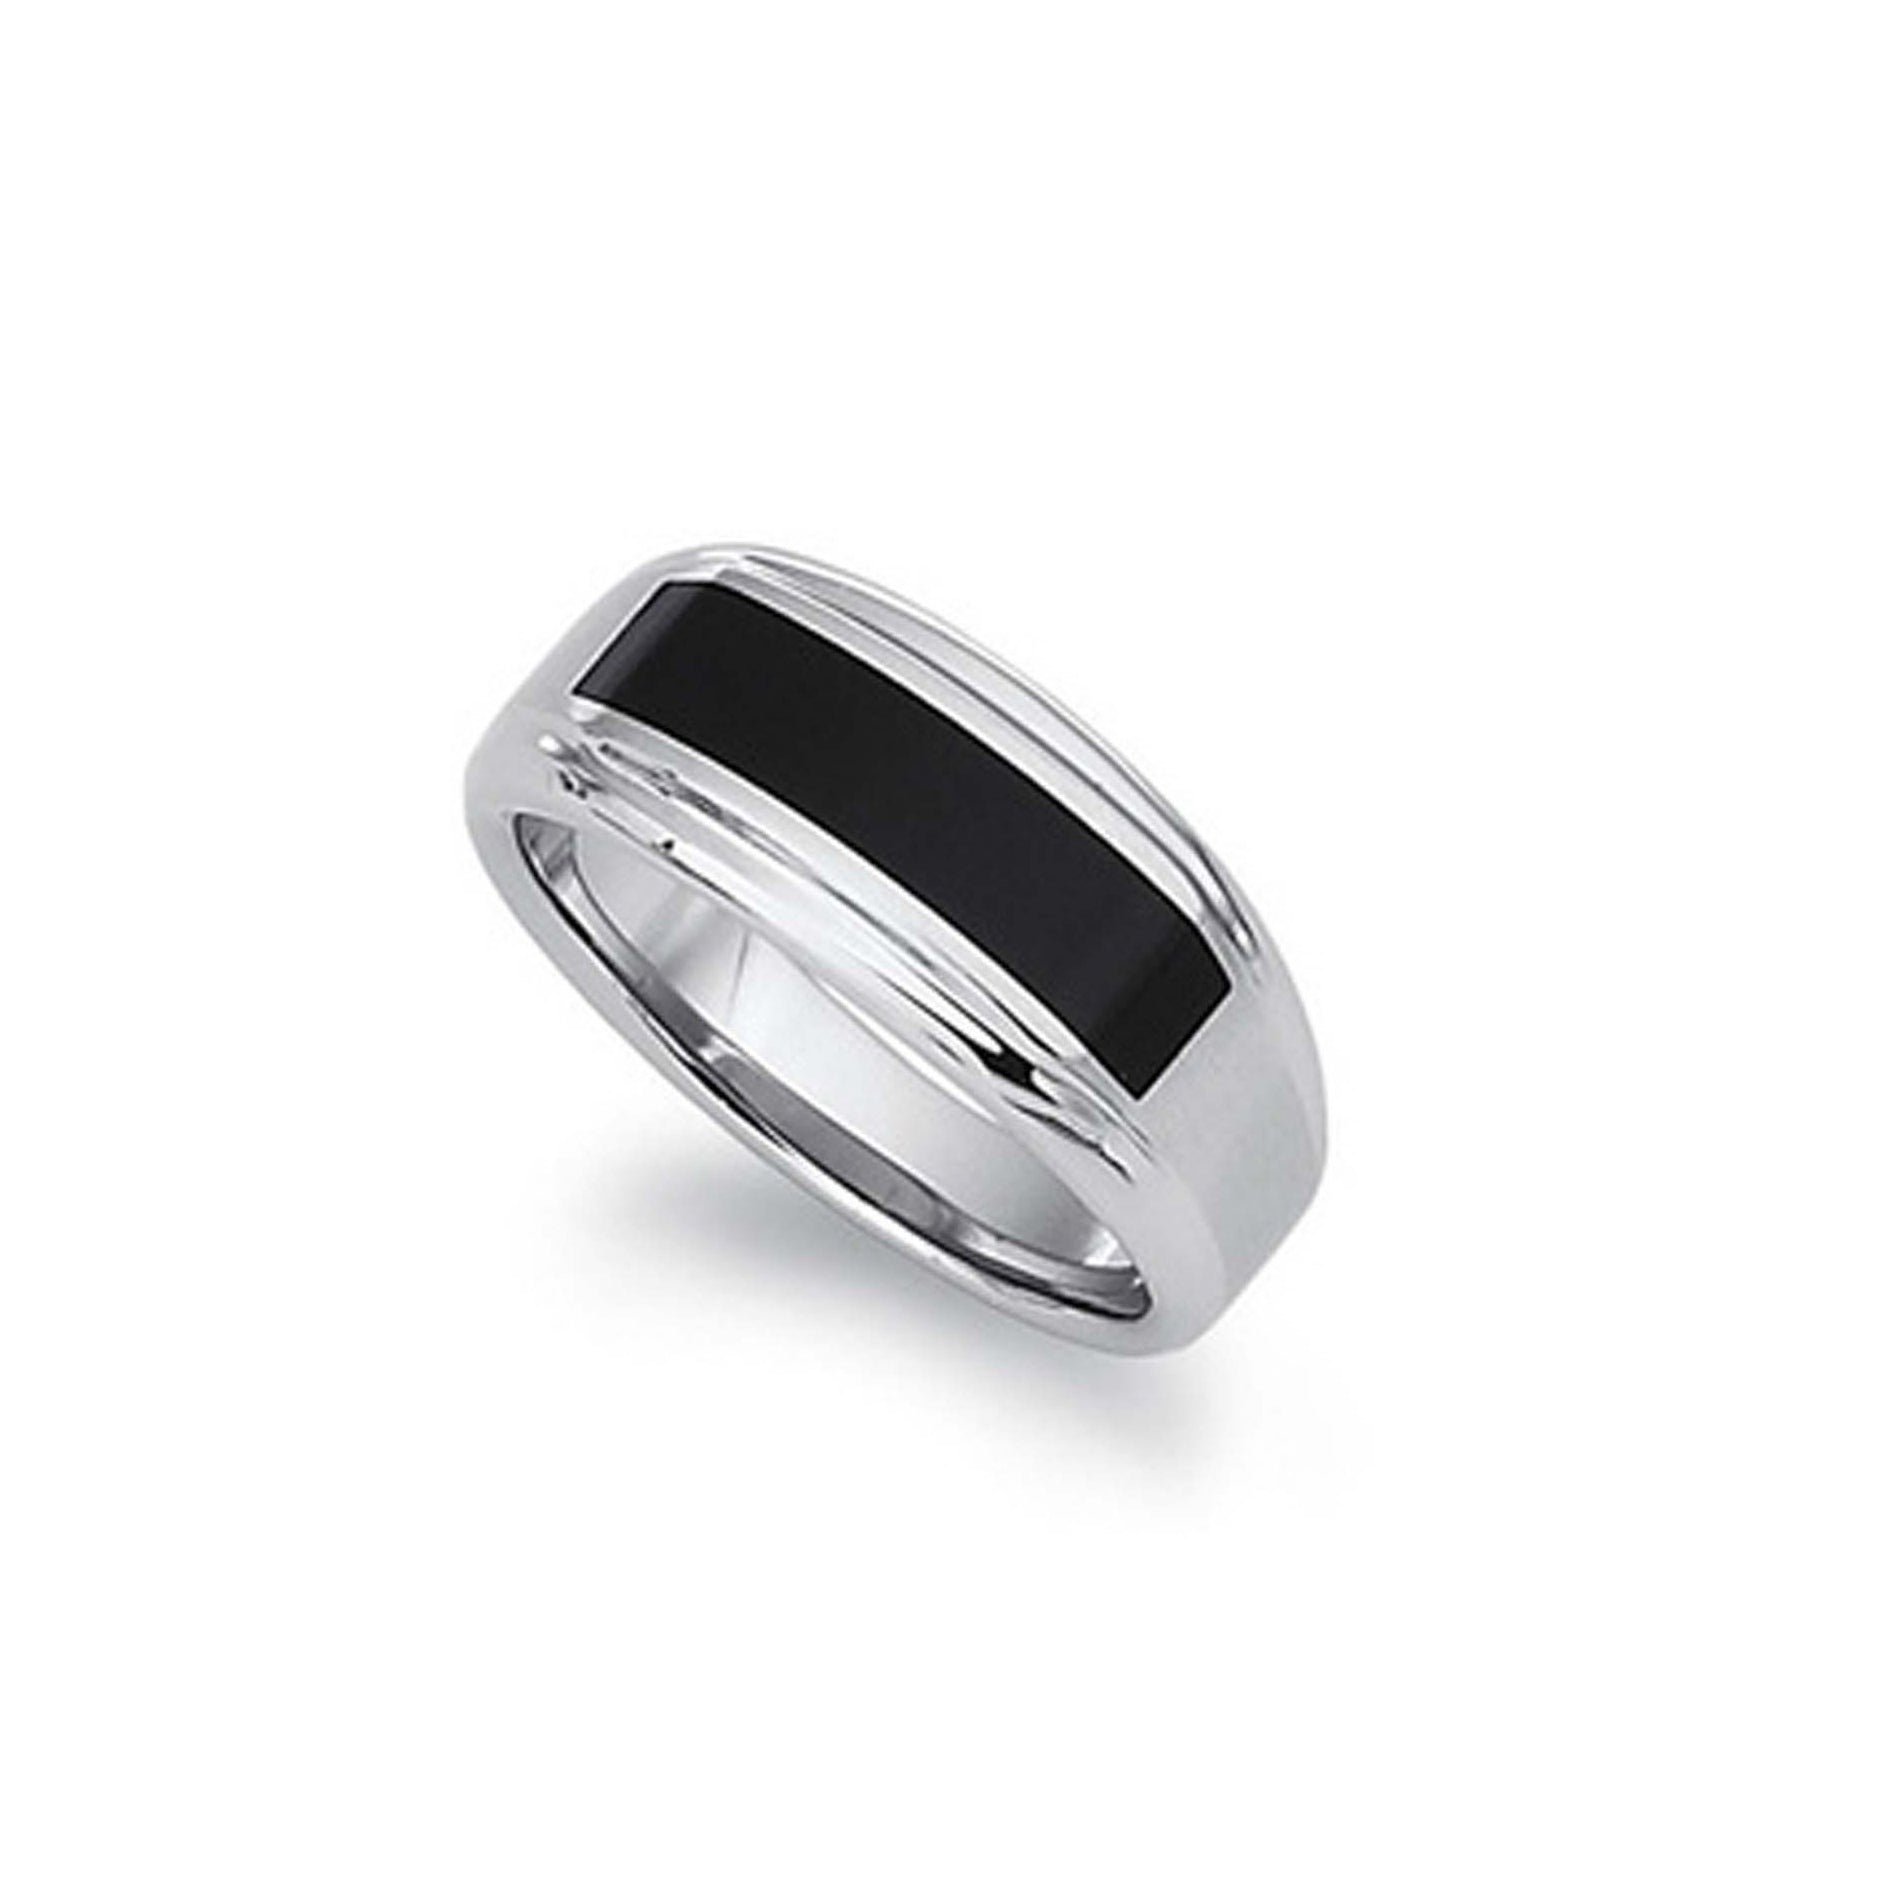 Black Enamel Men's Ring, Size 10, Stainless Steel